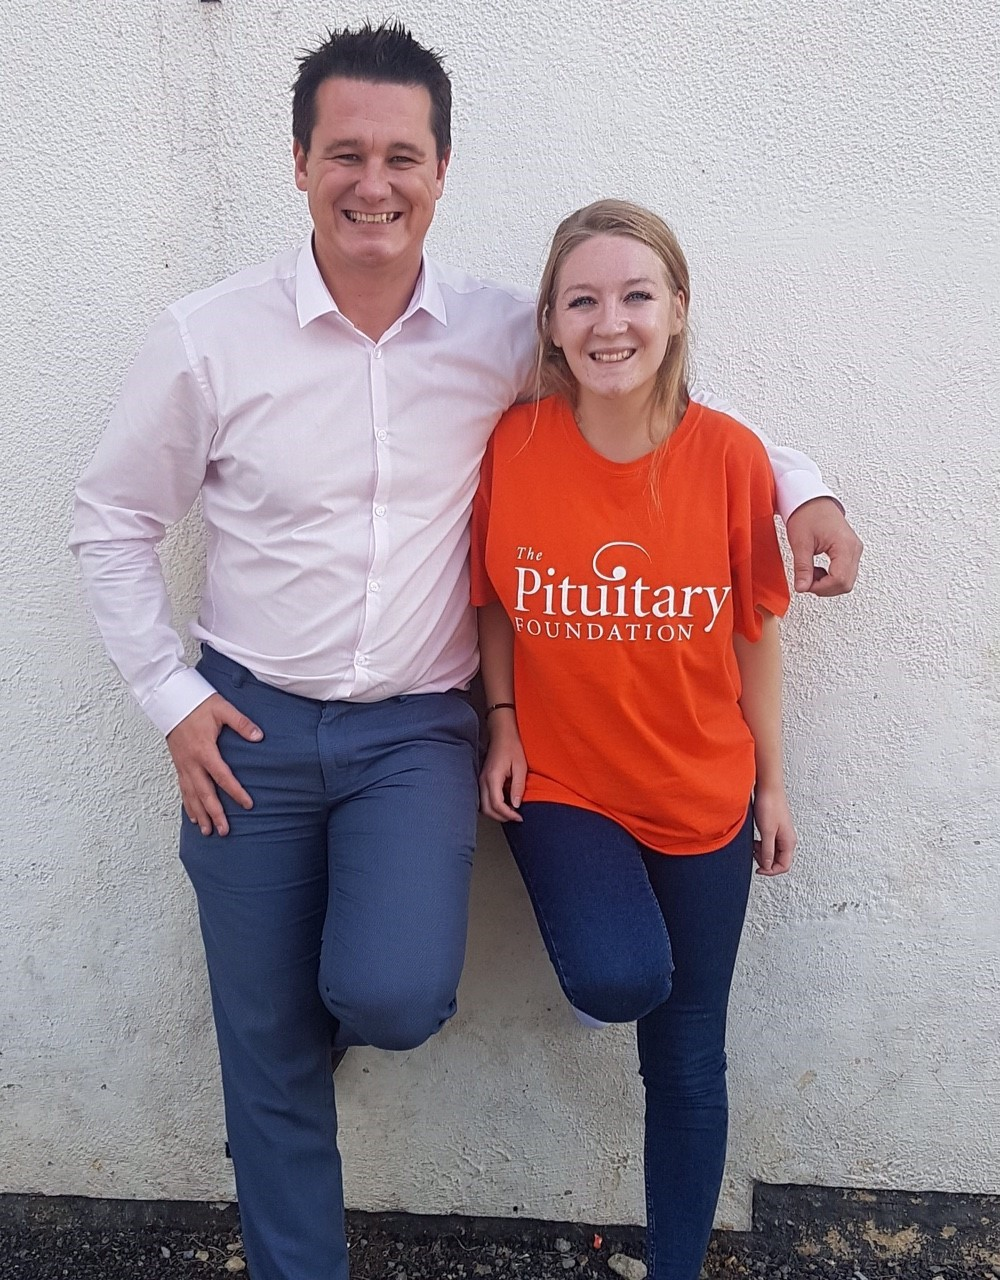 Jessica Buck with Jay Sheppard, senior fundraising manger at the Pituitary Foundation. Pic PA/Jessica Buck